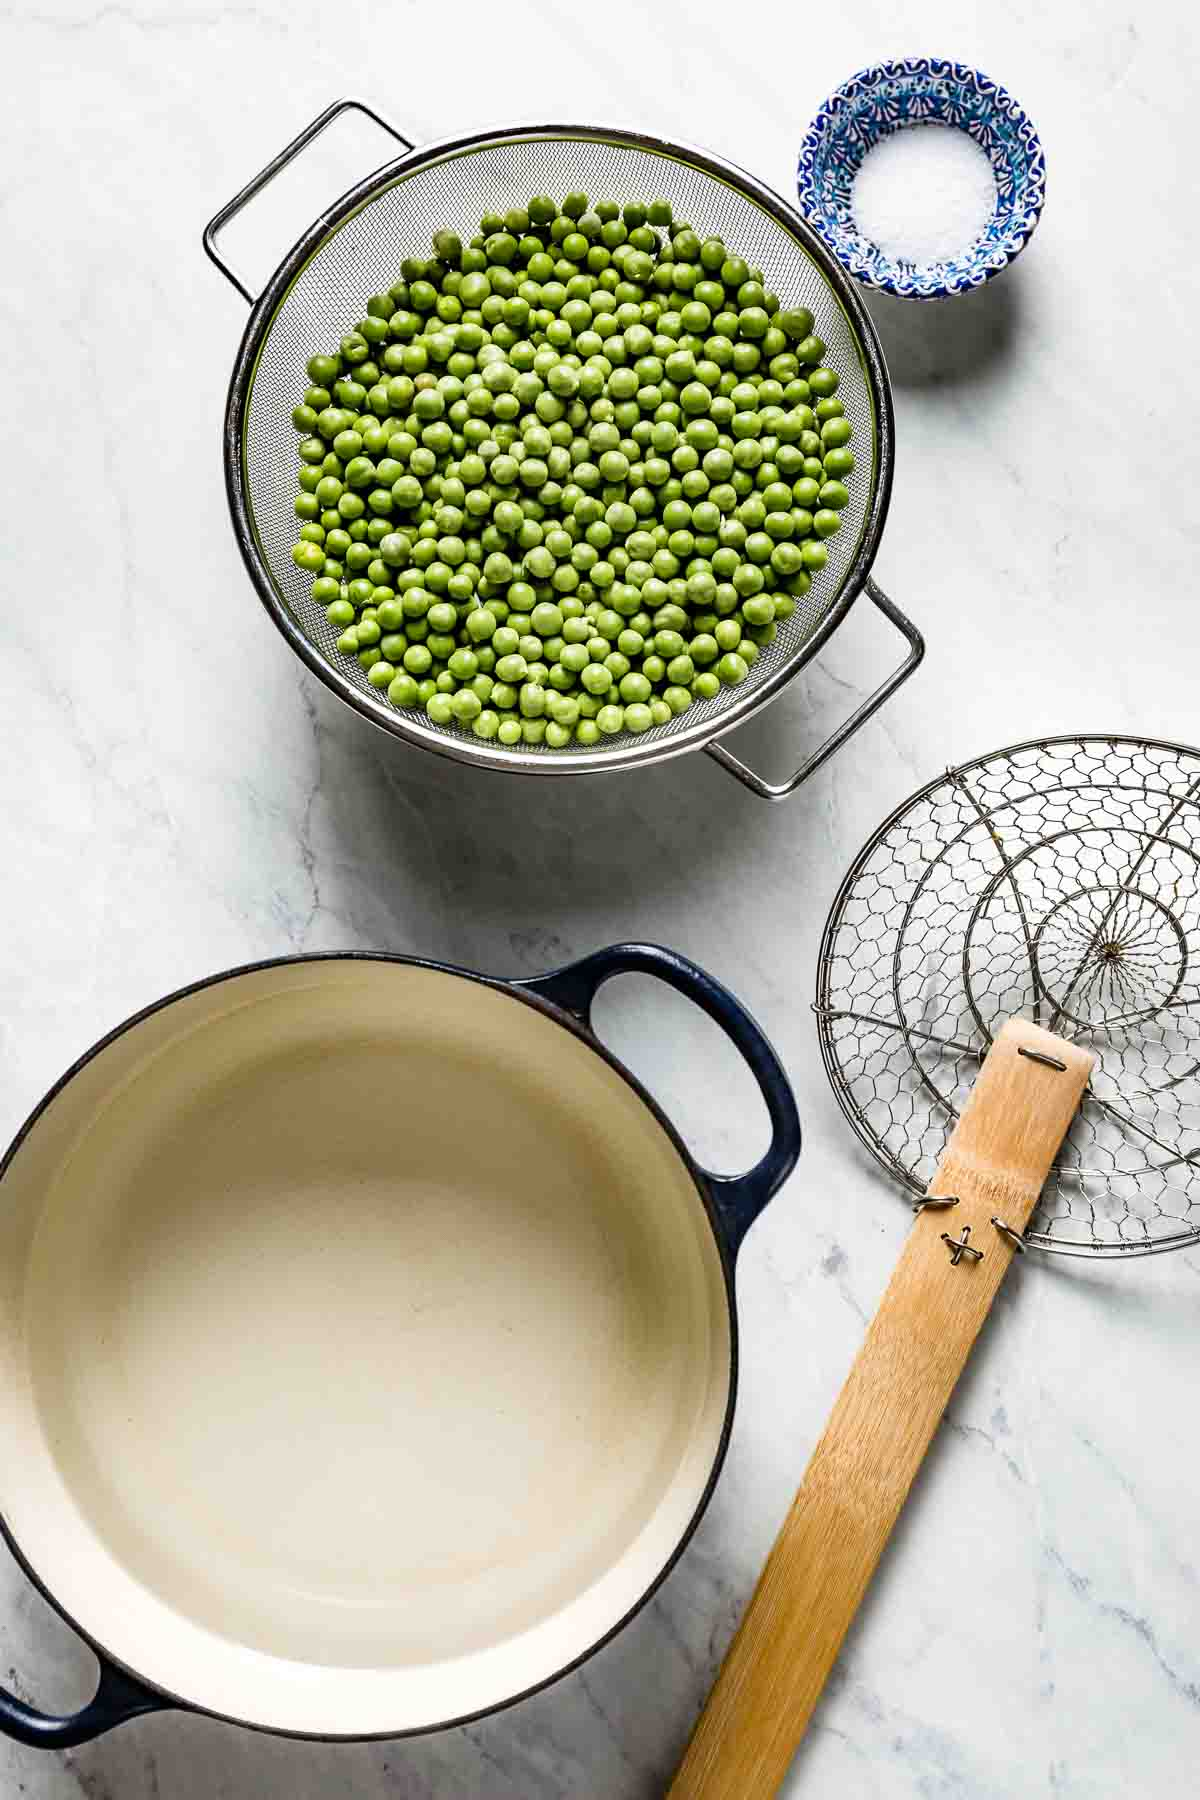 Equipment and ingredients needed for blanching peas